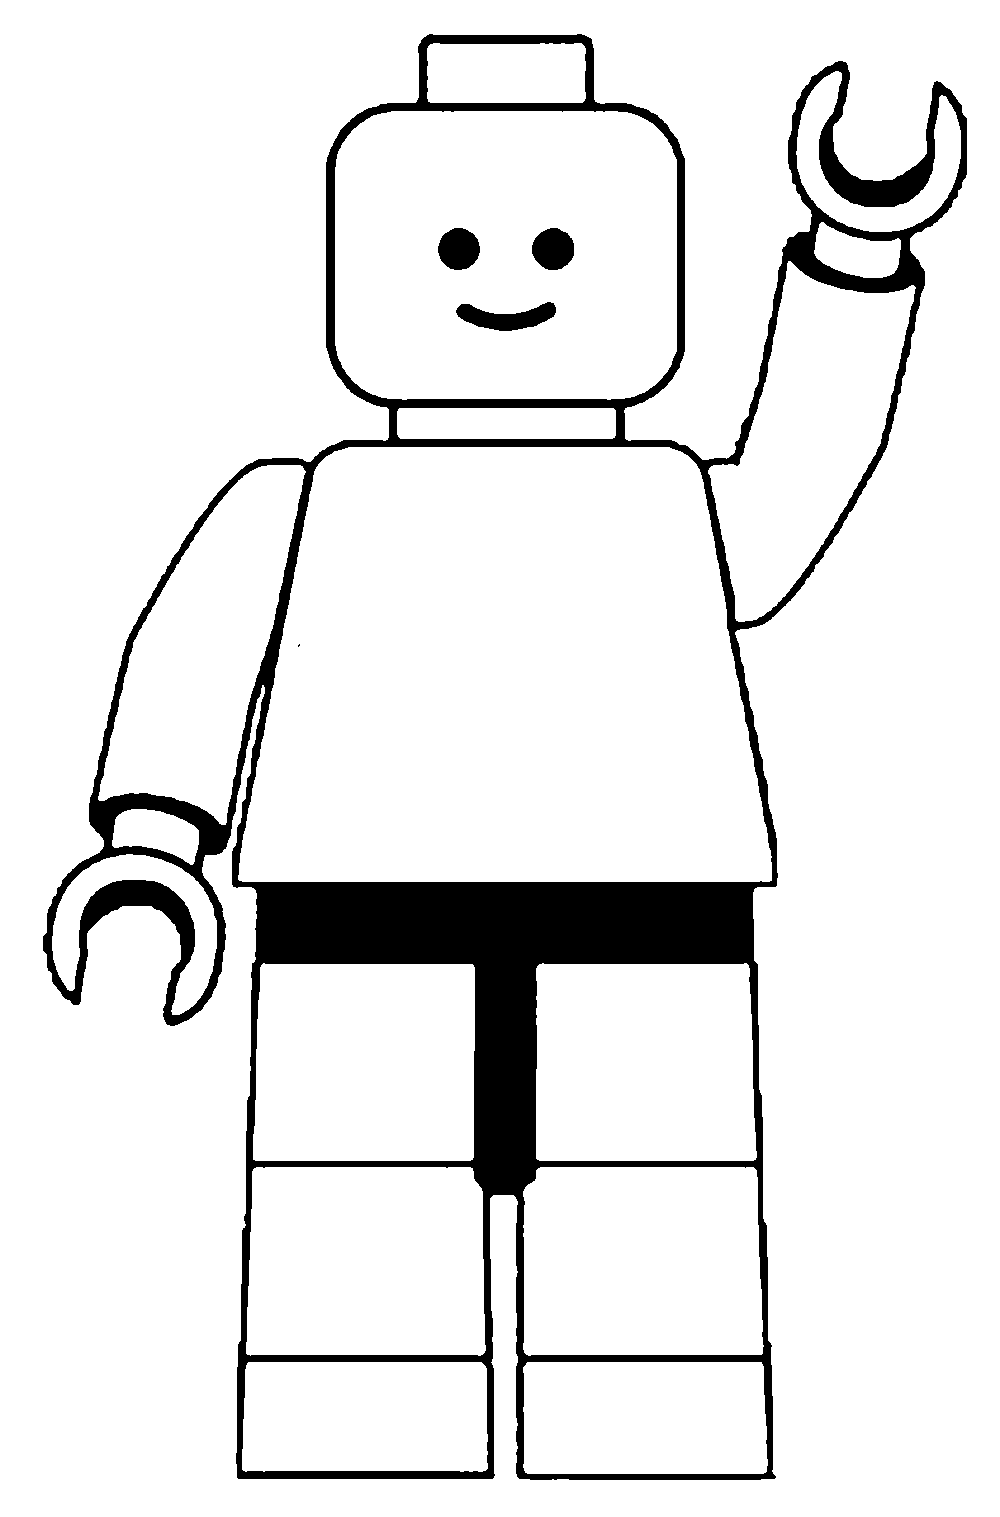 Man clip art black. Number 6 clipart number lego